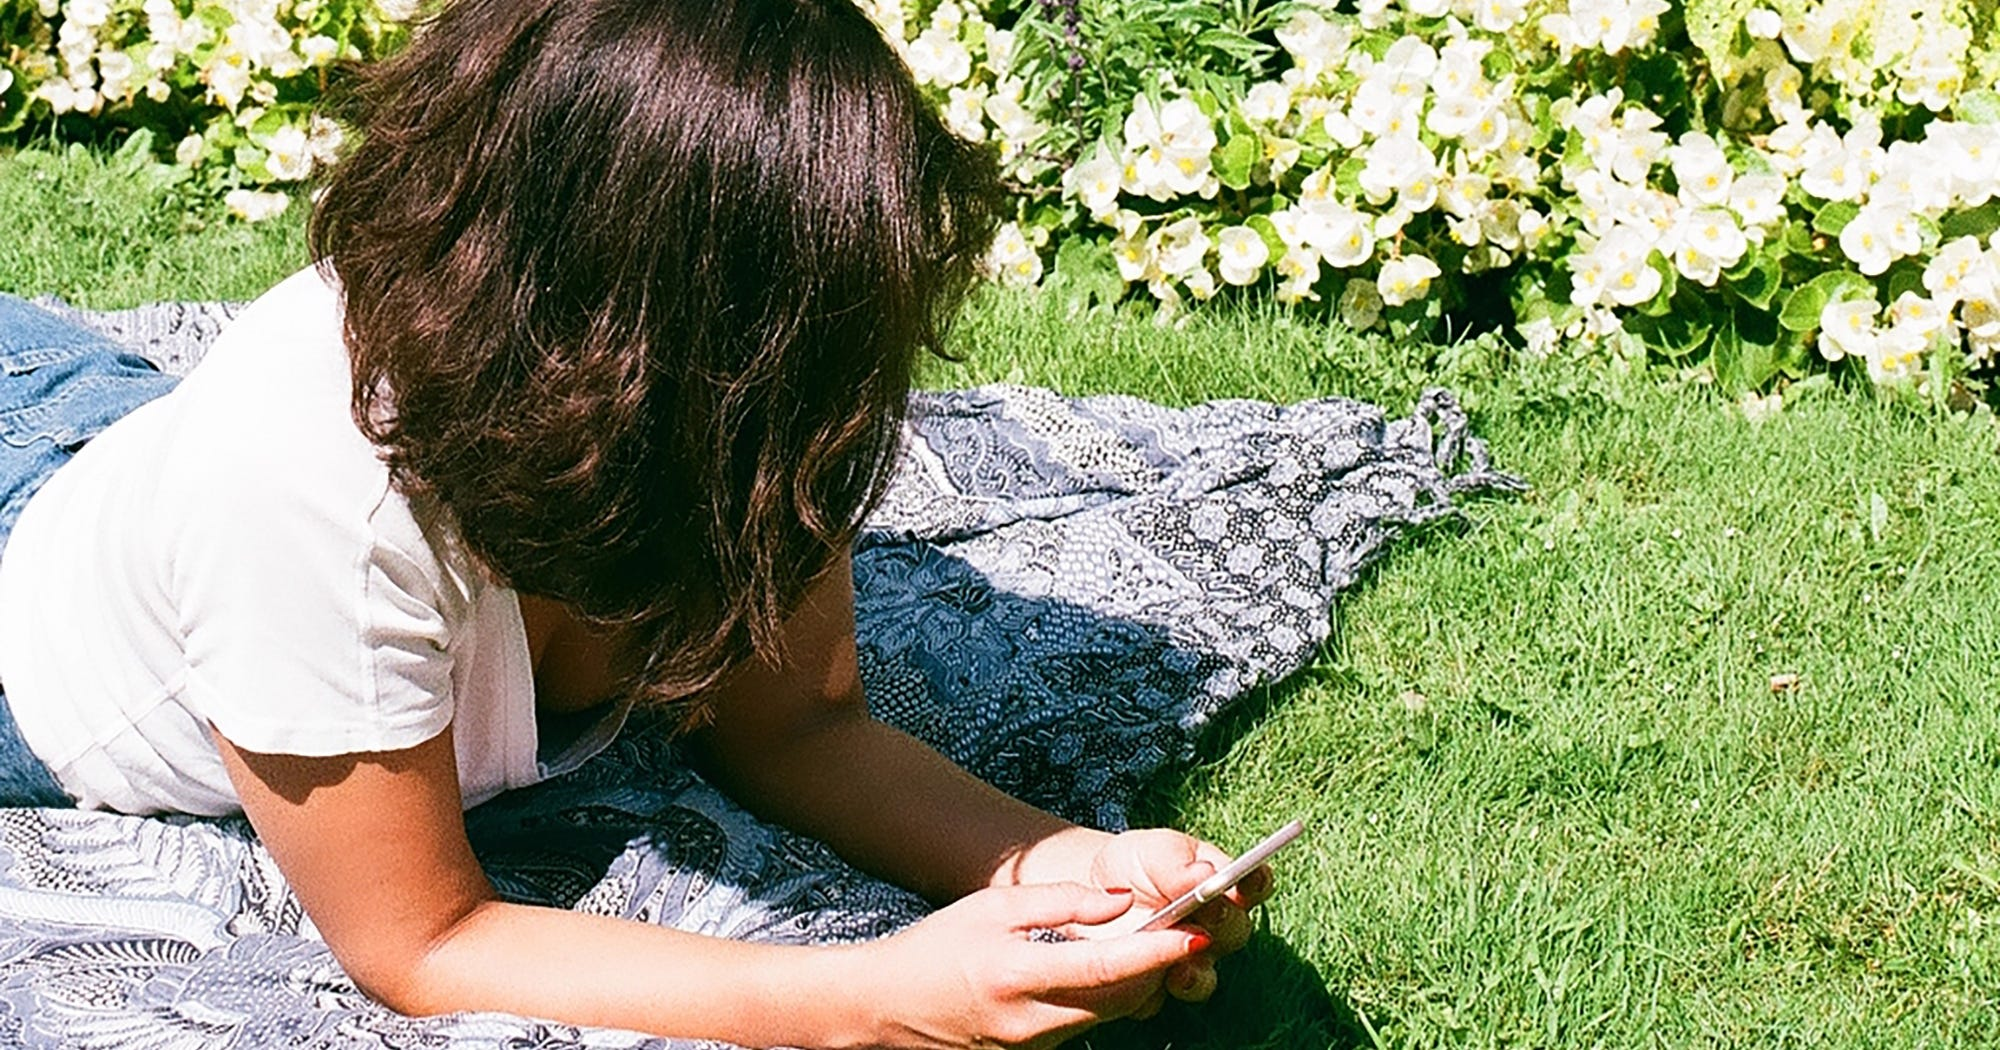 Looking At This Social Media Platform For Just 30 Minutes Can Affect Your Body Image